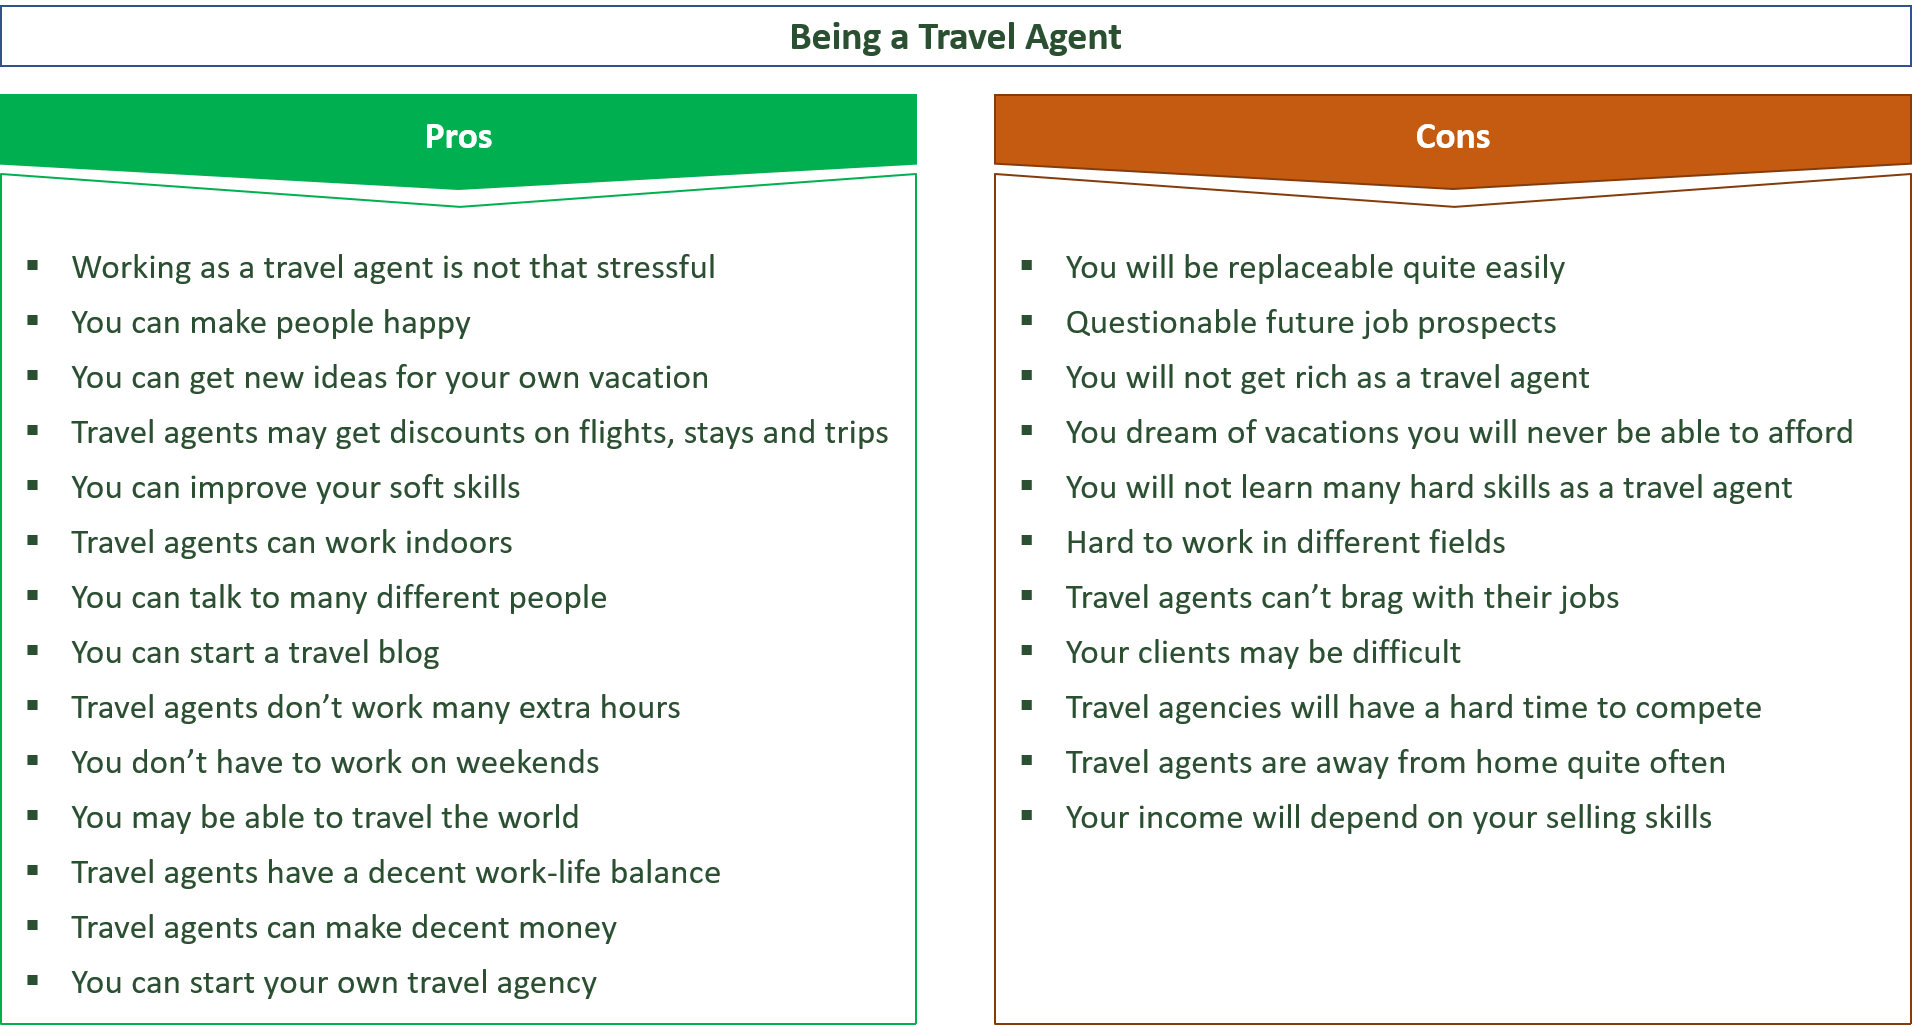 advantages and disadvantages of being a travel agent